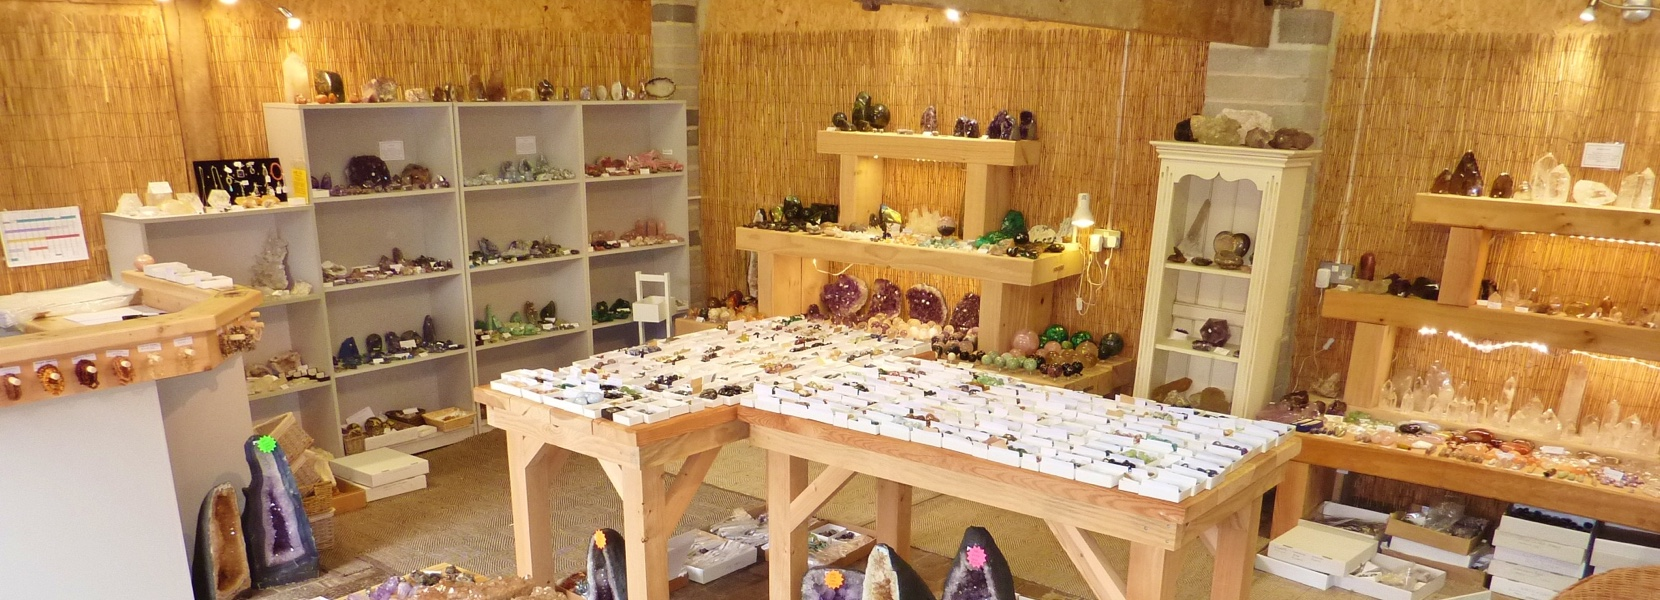 Crystal Shop Kettering - The Crystal Barn